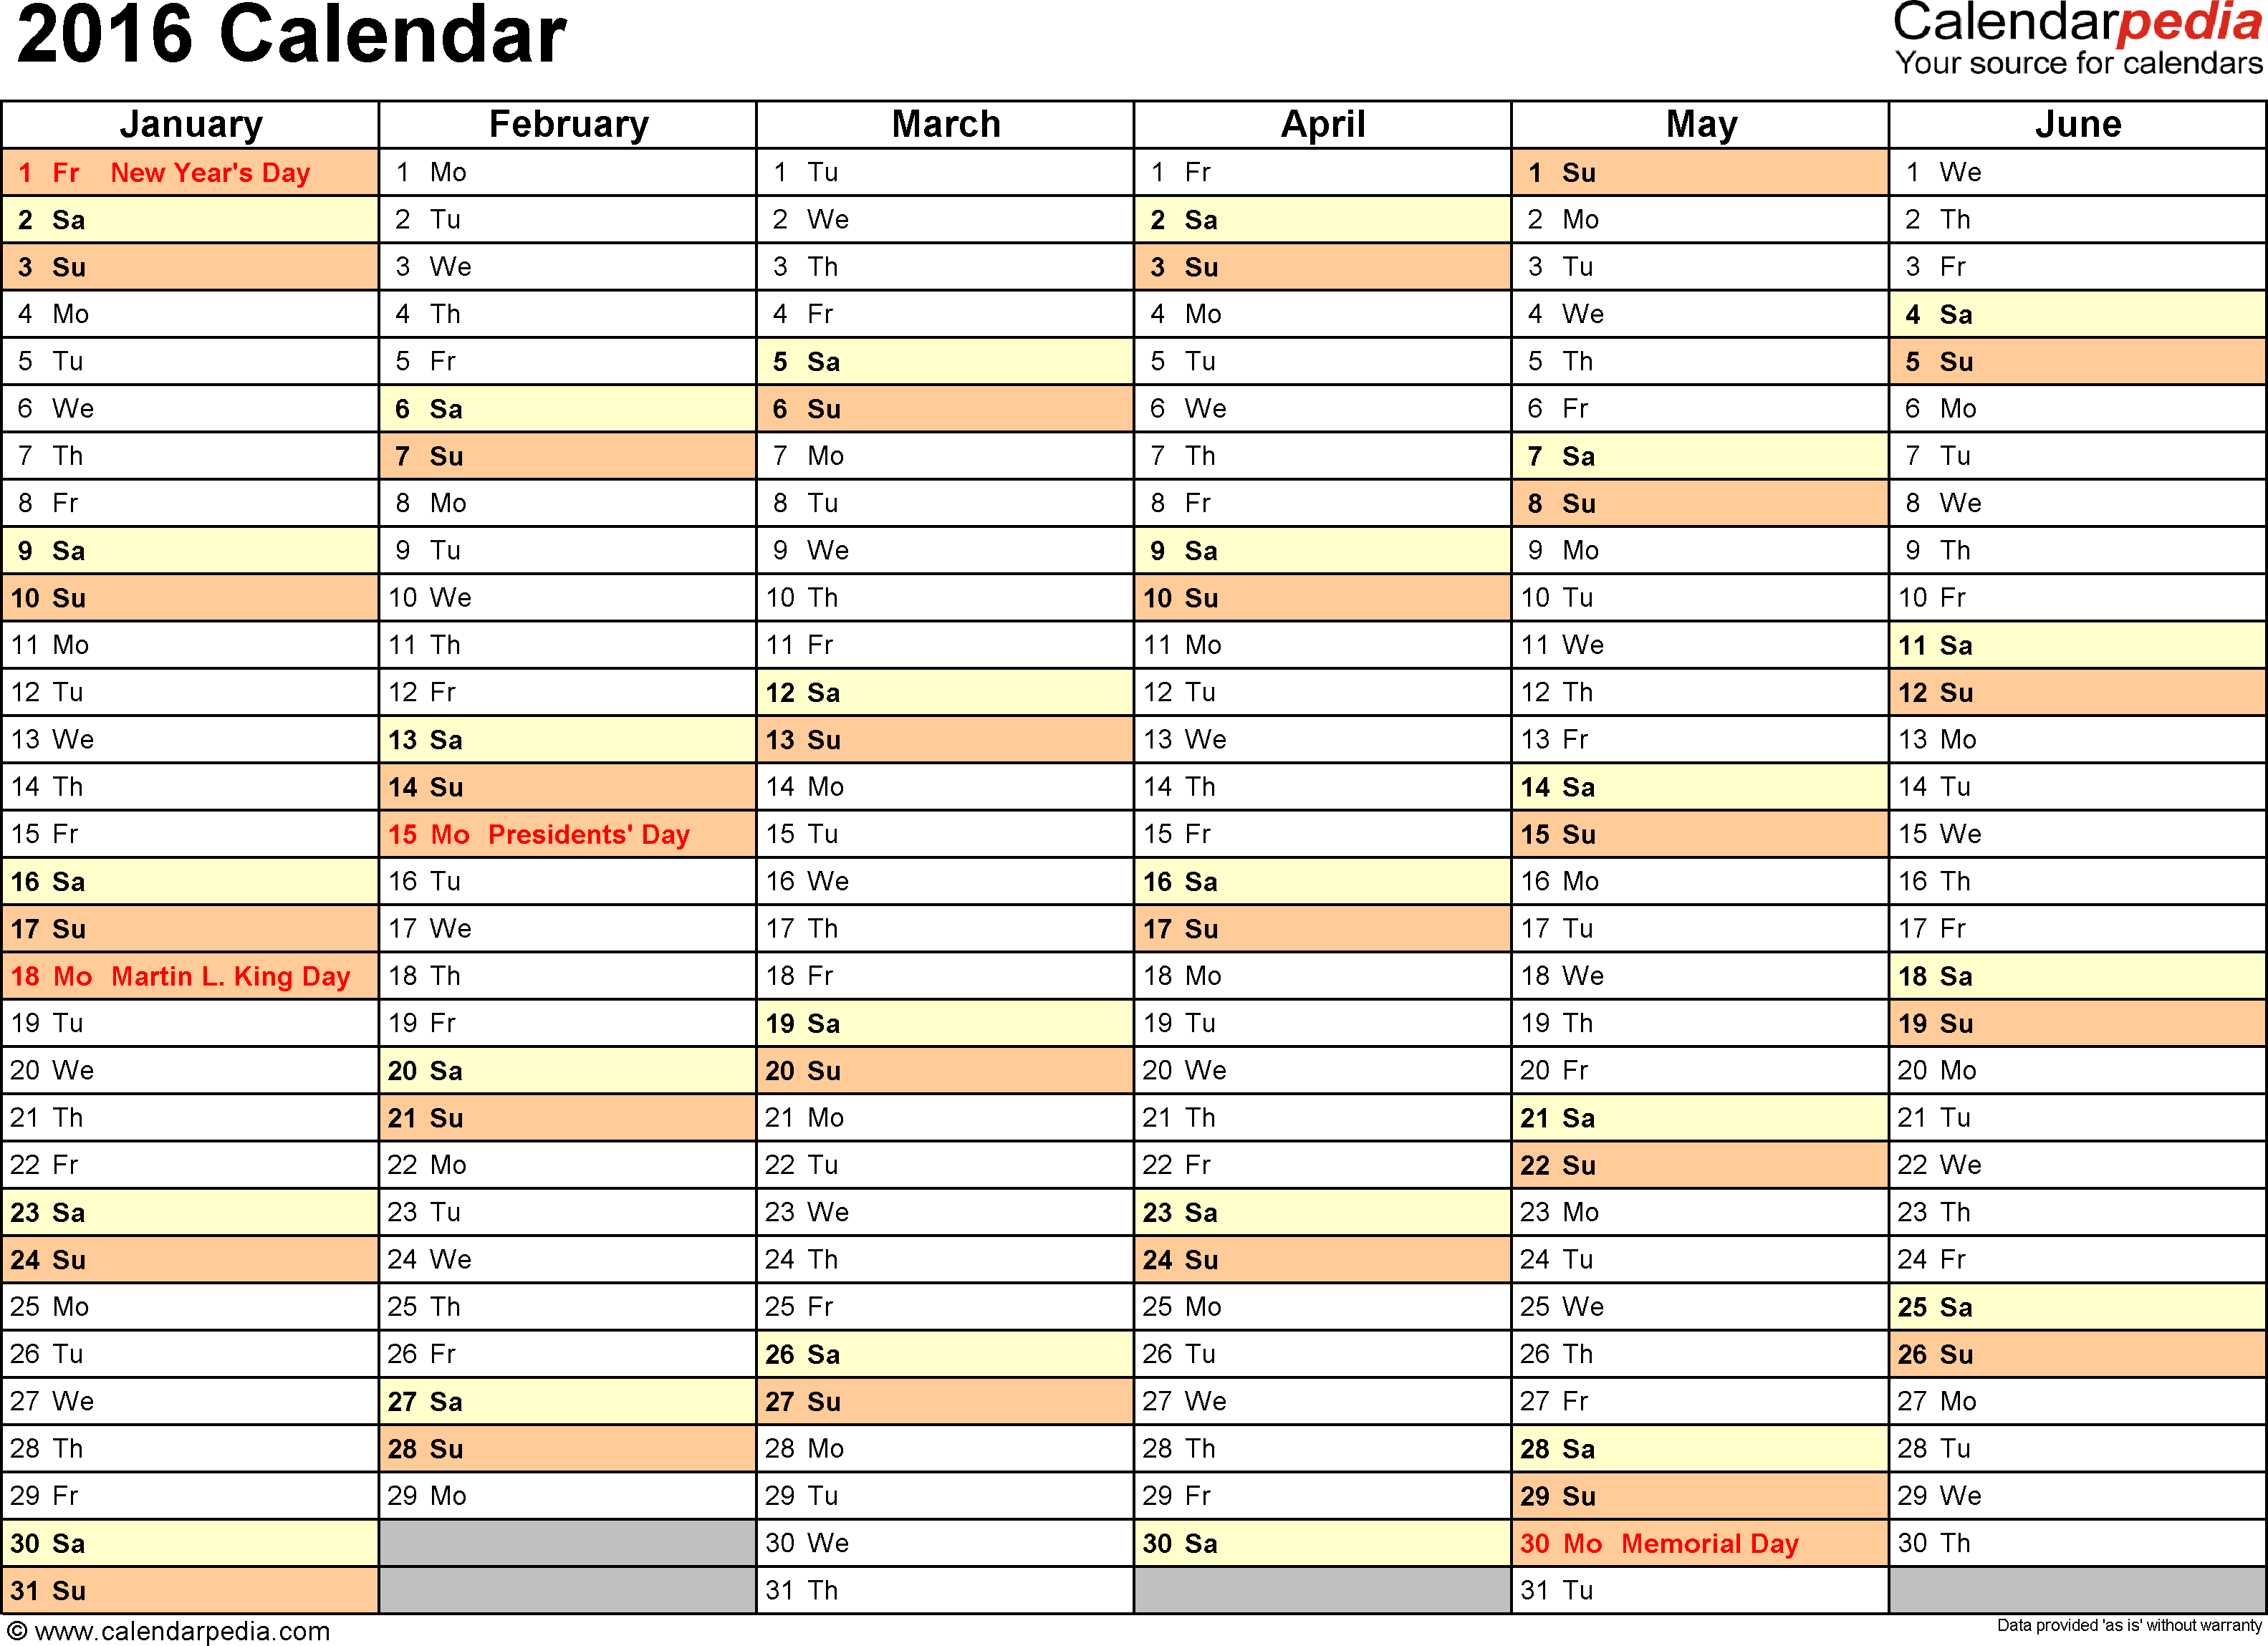 Ediblewildsus  Fascinating  Calendar  Download  Free Printable Excel Templates Xls With Luxury Template   Calendar For Excel Months Horizontally  Pages Landscape Orientation With Easy On The Eye How To Add A Formula In Excel Also Lock Excel Cells In Addition Subtract Excel And Formulas Not Working In Excel As Well As Calculating Percentages In Excel Additionally Lock Cells In Excel  From Calendarpediacom With Ediblewildsus  Luxury  Calendar  Download  Free Printable Excel Templates Xls With Easy On The Eye Template   Calendar For Excel Months Horizontally  Pages Landscape Orientation And Fascinating How To Add A Formula In Excel Also Lock Excel Cells In Addition Subtract Excel From Calendarpediacom